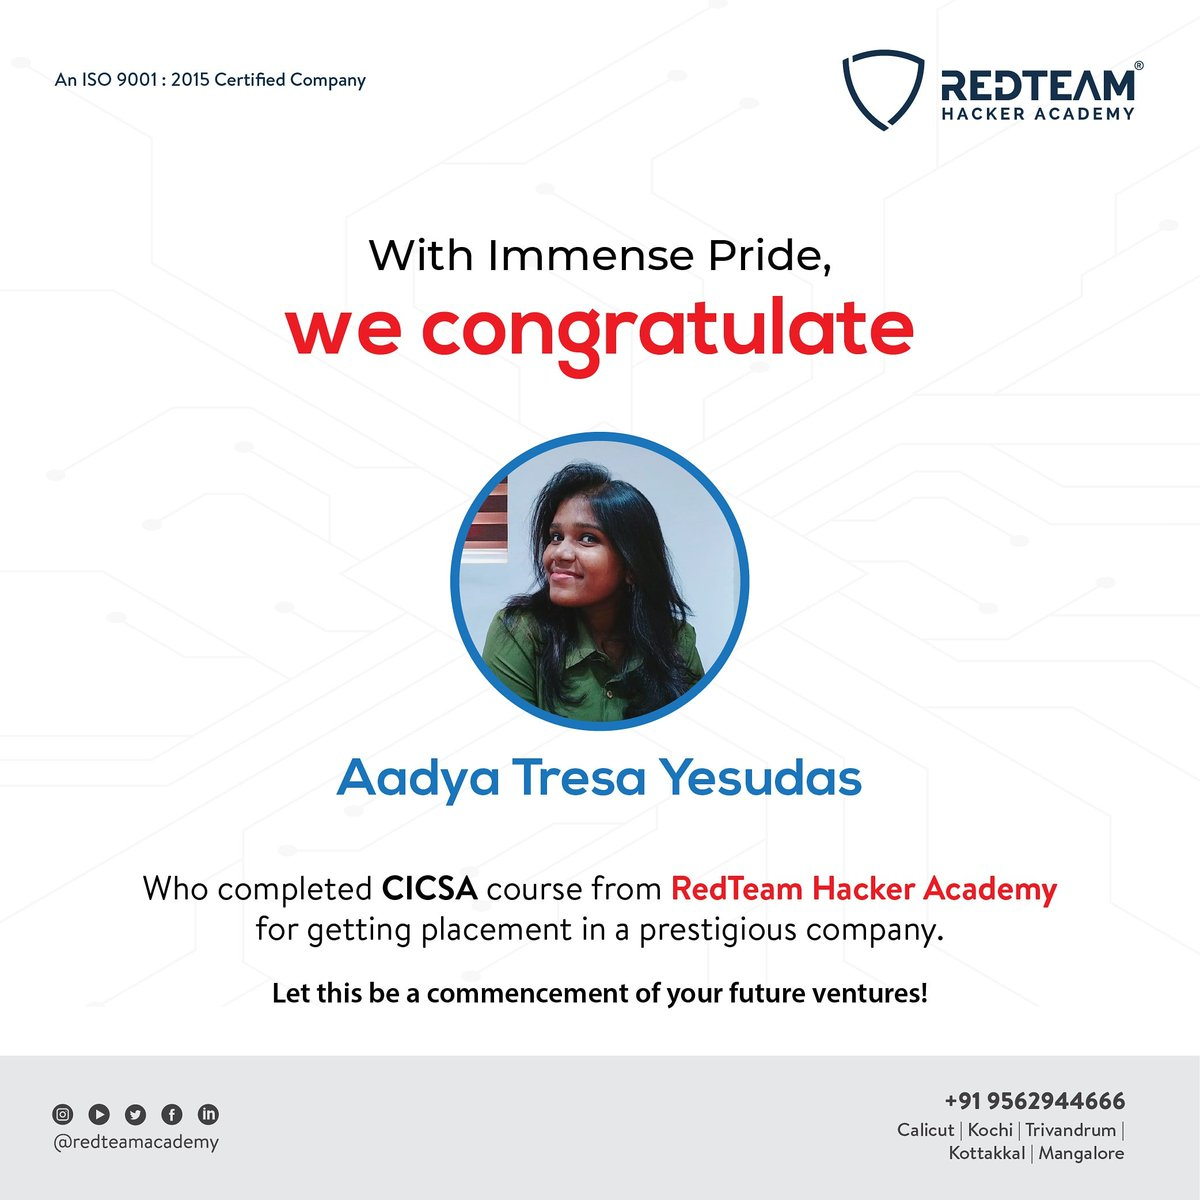 RedTeam Hacker Academy expresses full-hearted appreciation to Ms. Aadya Tresa Yesudas, for her successful placement in a very reputed company, after the completion of CICSA course. #cybersecurity #ethicalhacker #ethicalhacking #cybersecuritytraining #RedTeamHackerAcademypic.twitter.com/NC1MtMaMXP